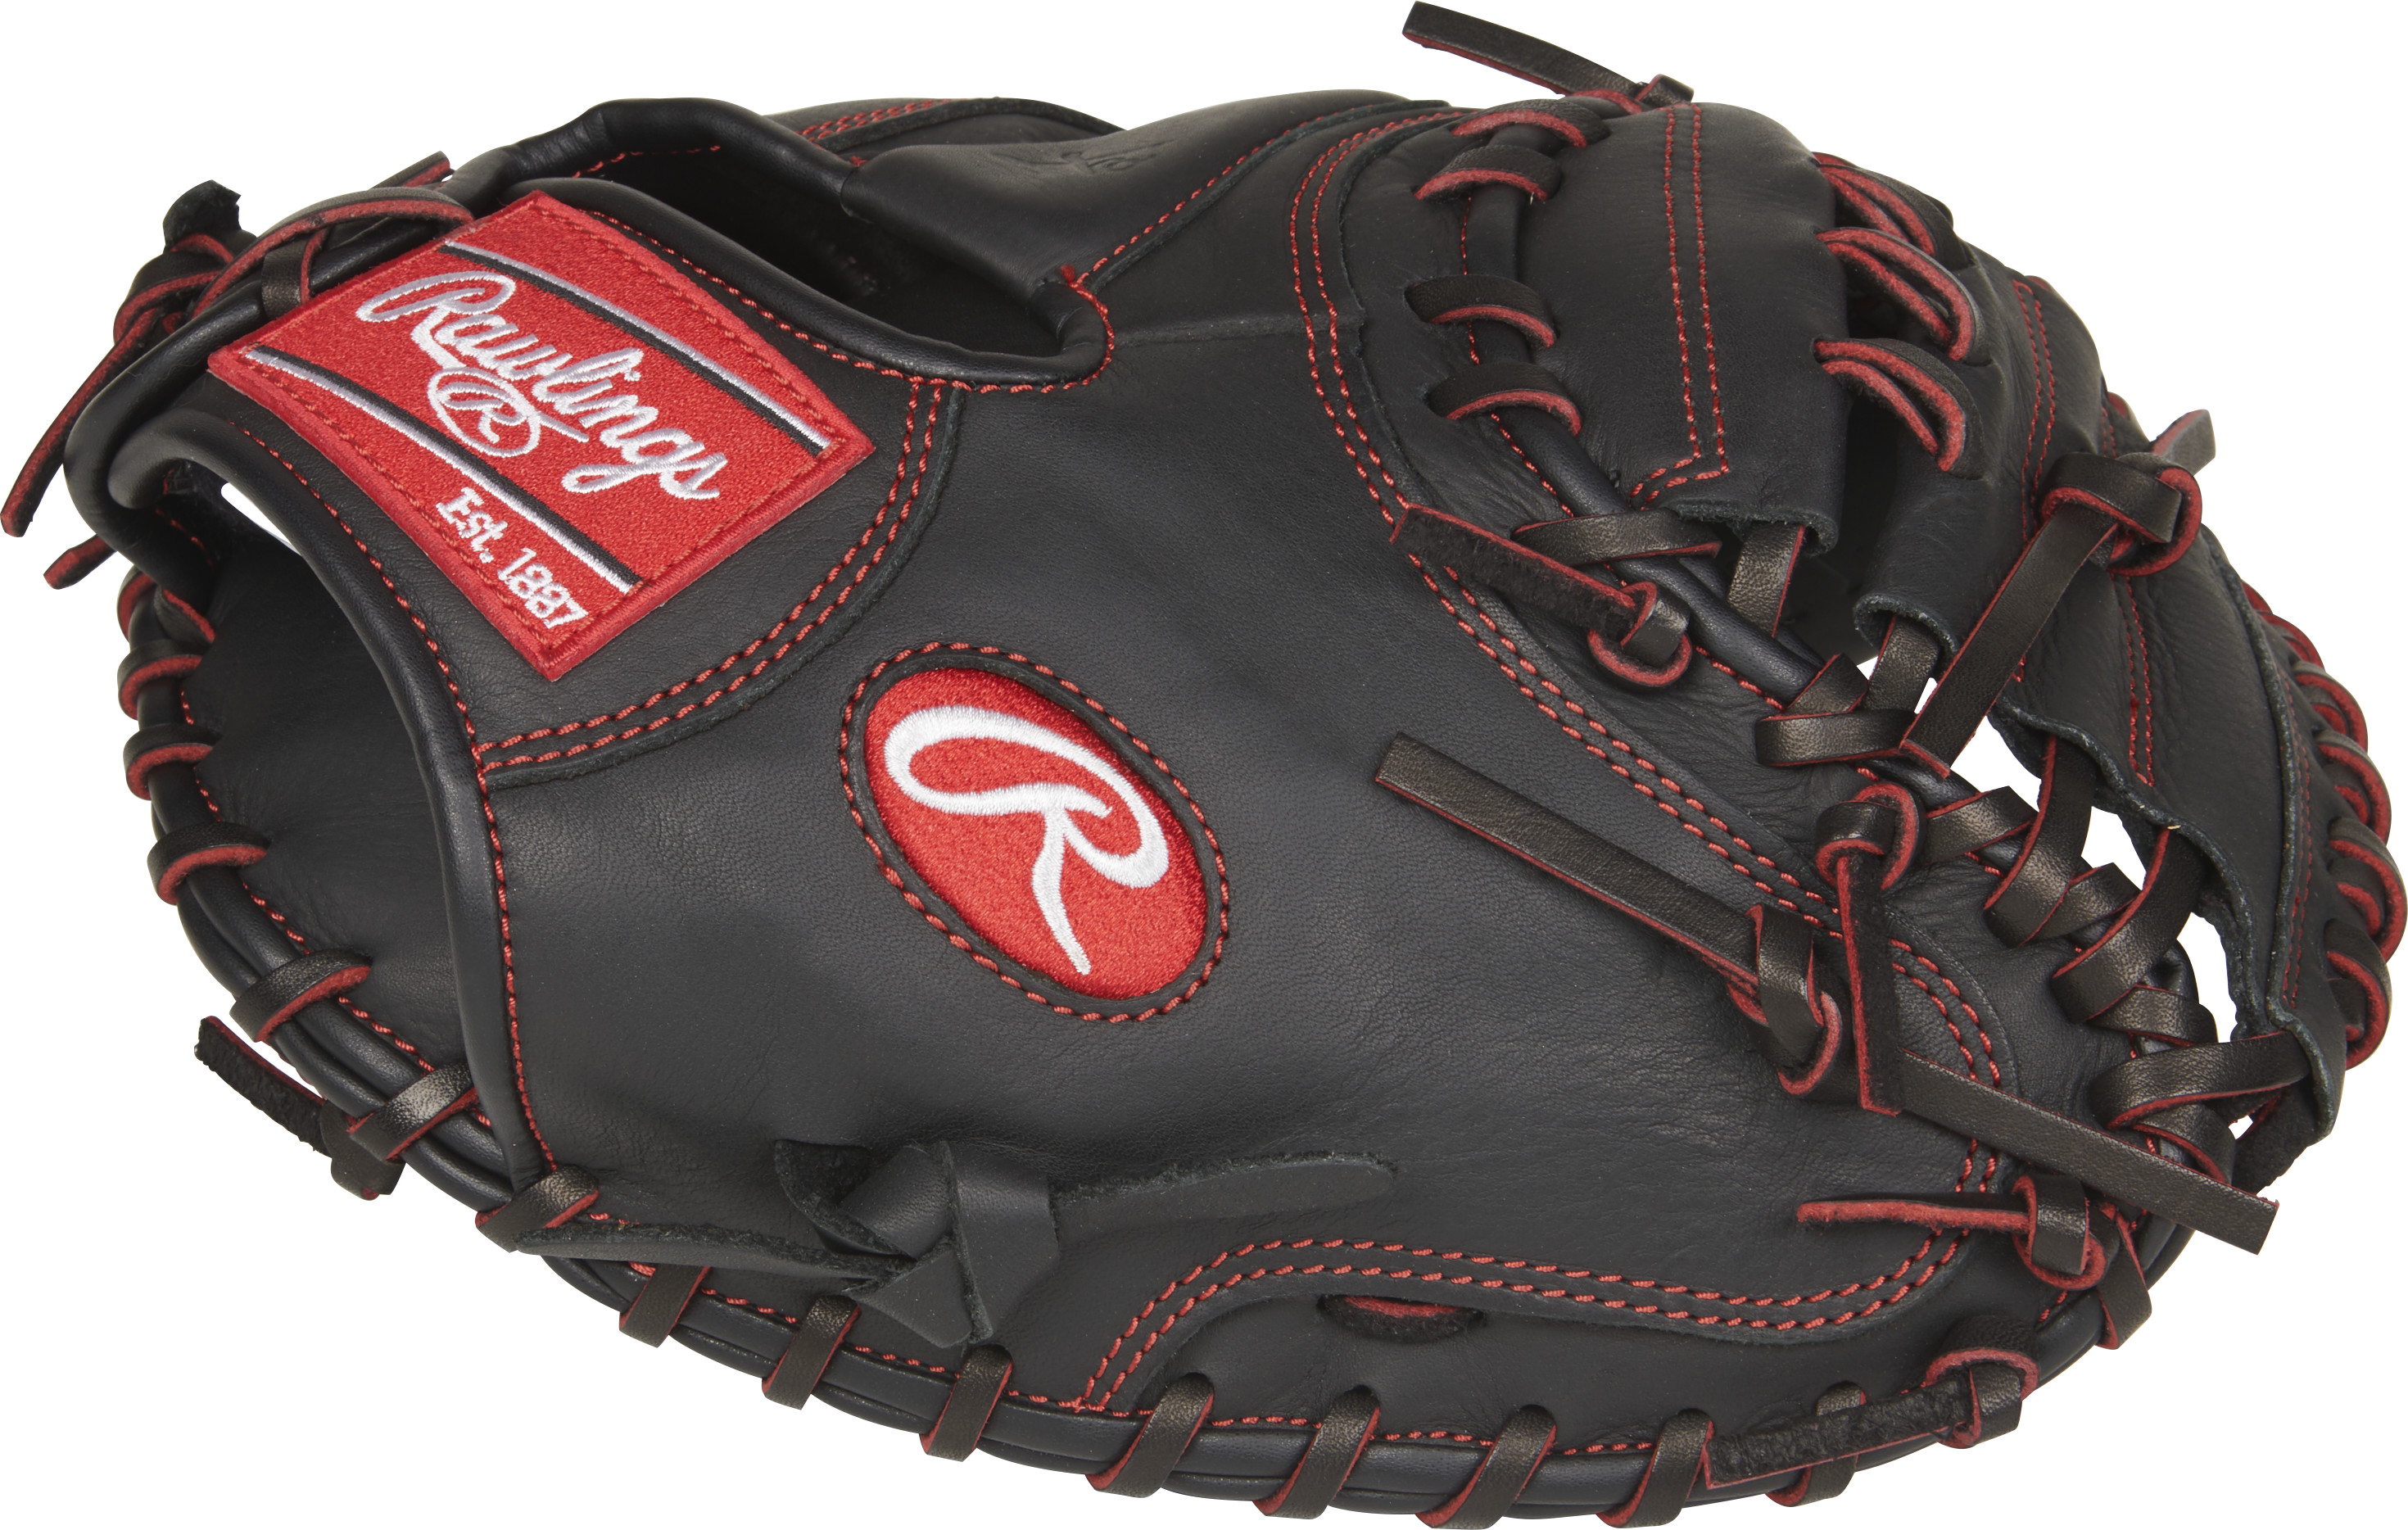 http://www.bestbatdeals.com/images/gloves/rawlings/R9YPTCM32B-3.jpg